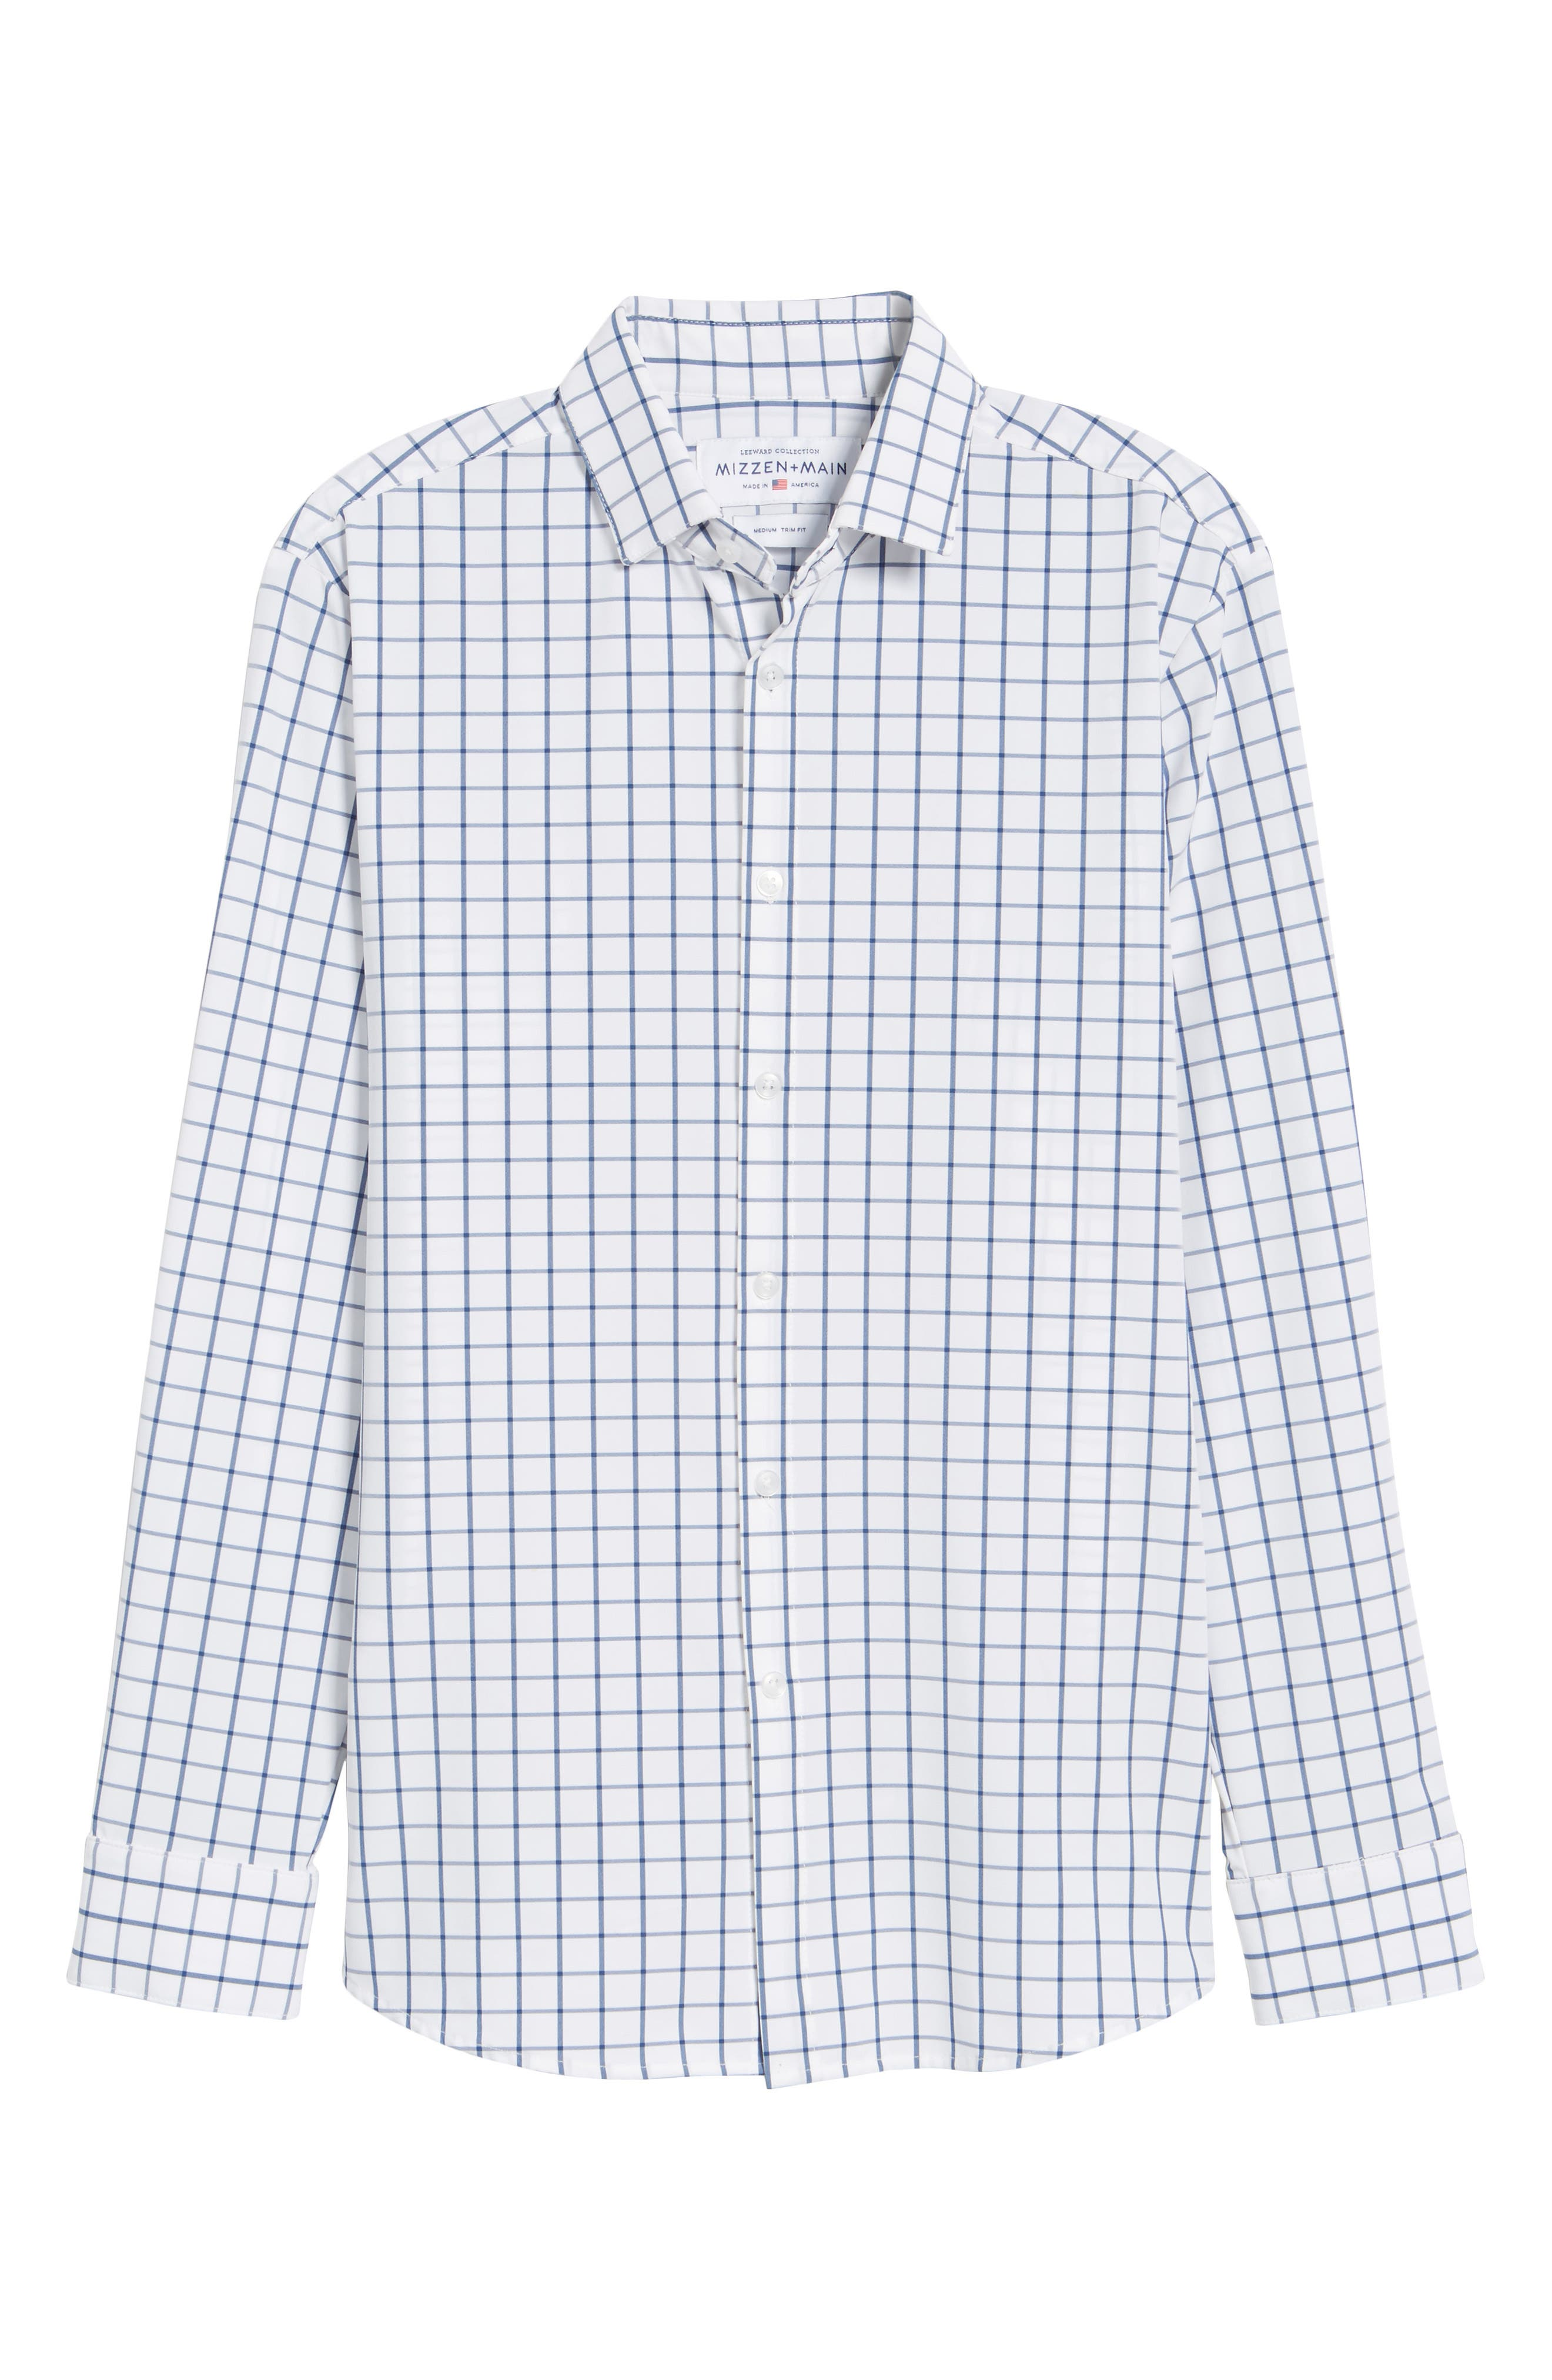 Bowie Windowpane Performance Sport Shirt,                             Alternate thumbnail 6, color,                             NAVY